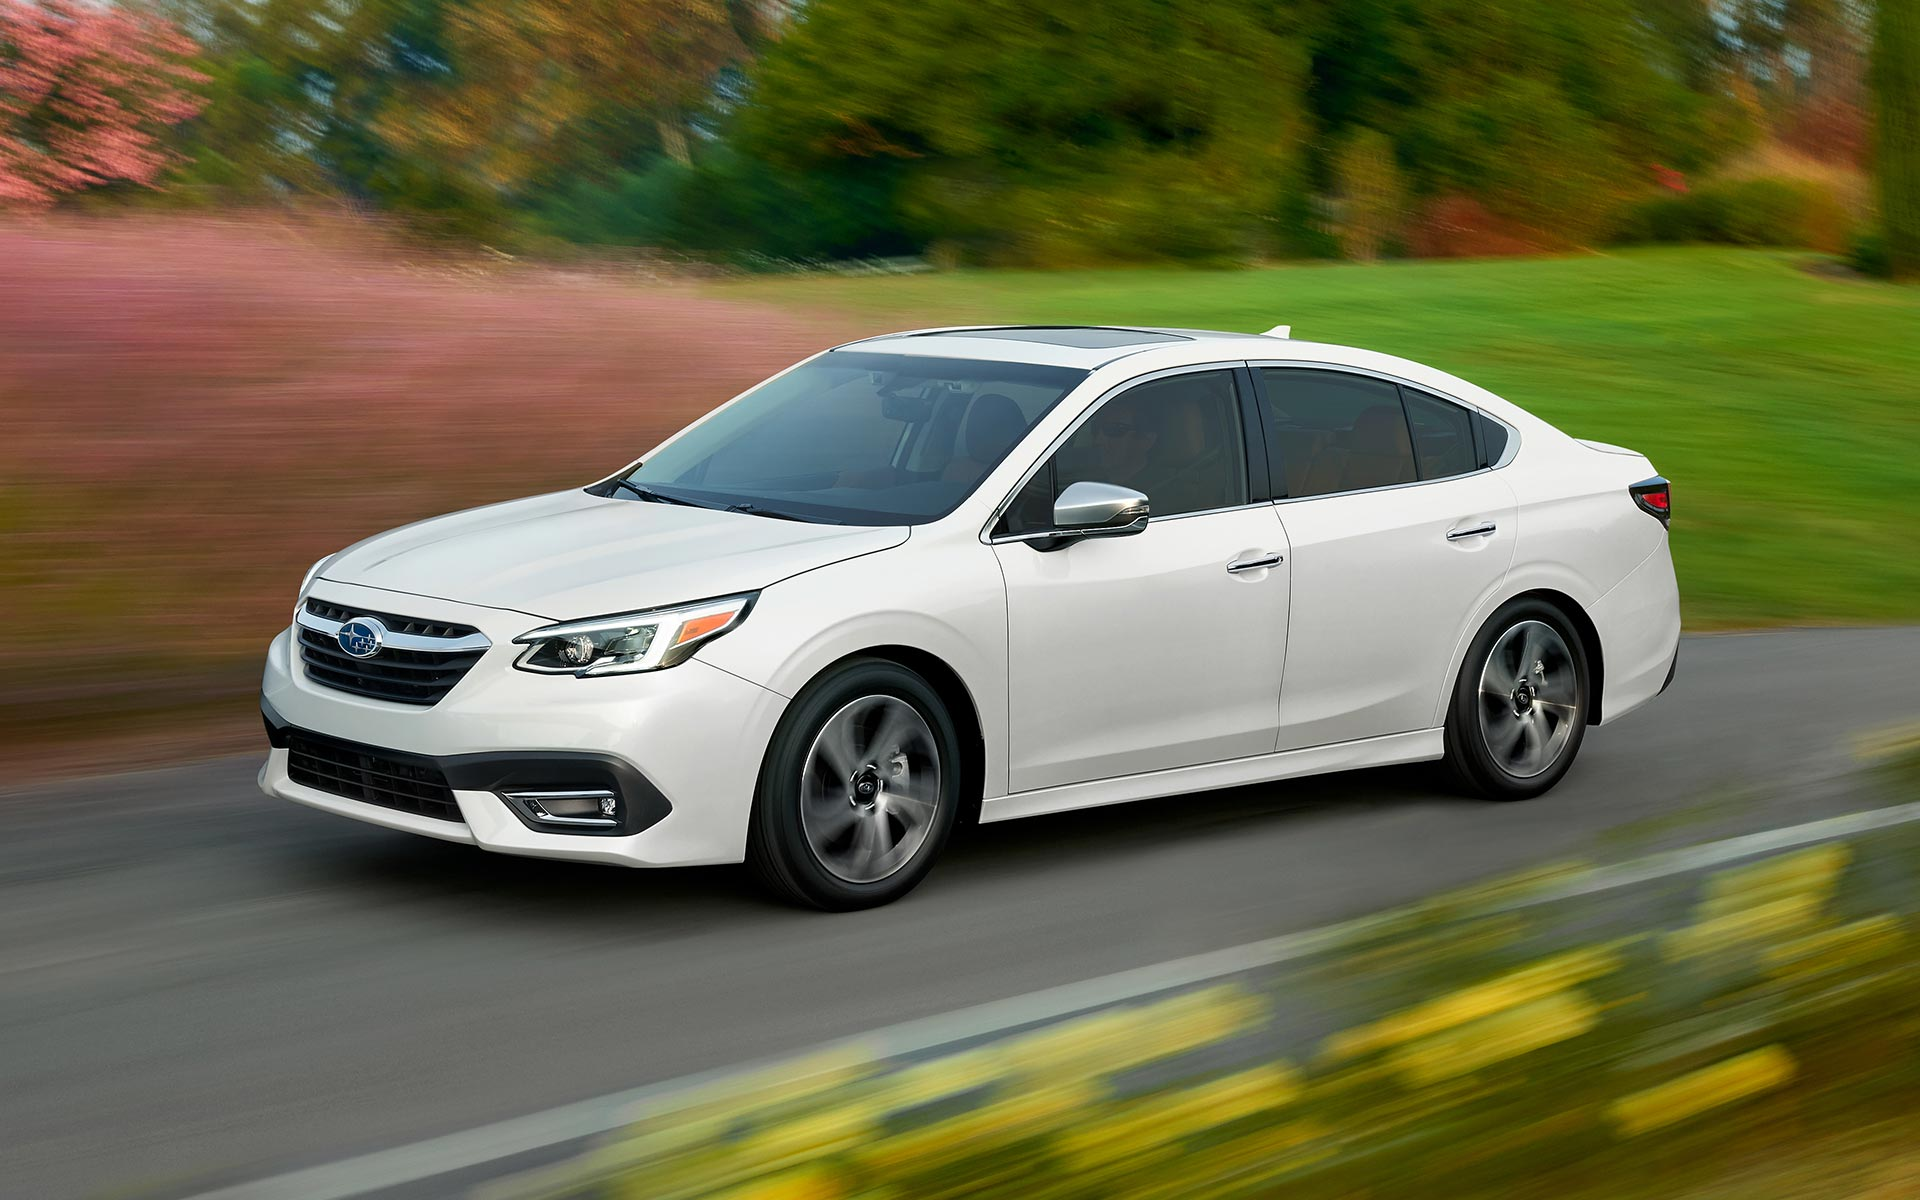 63 All New 2020 Subaru Legacy Configurations